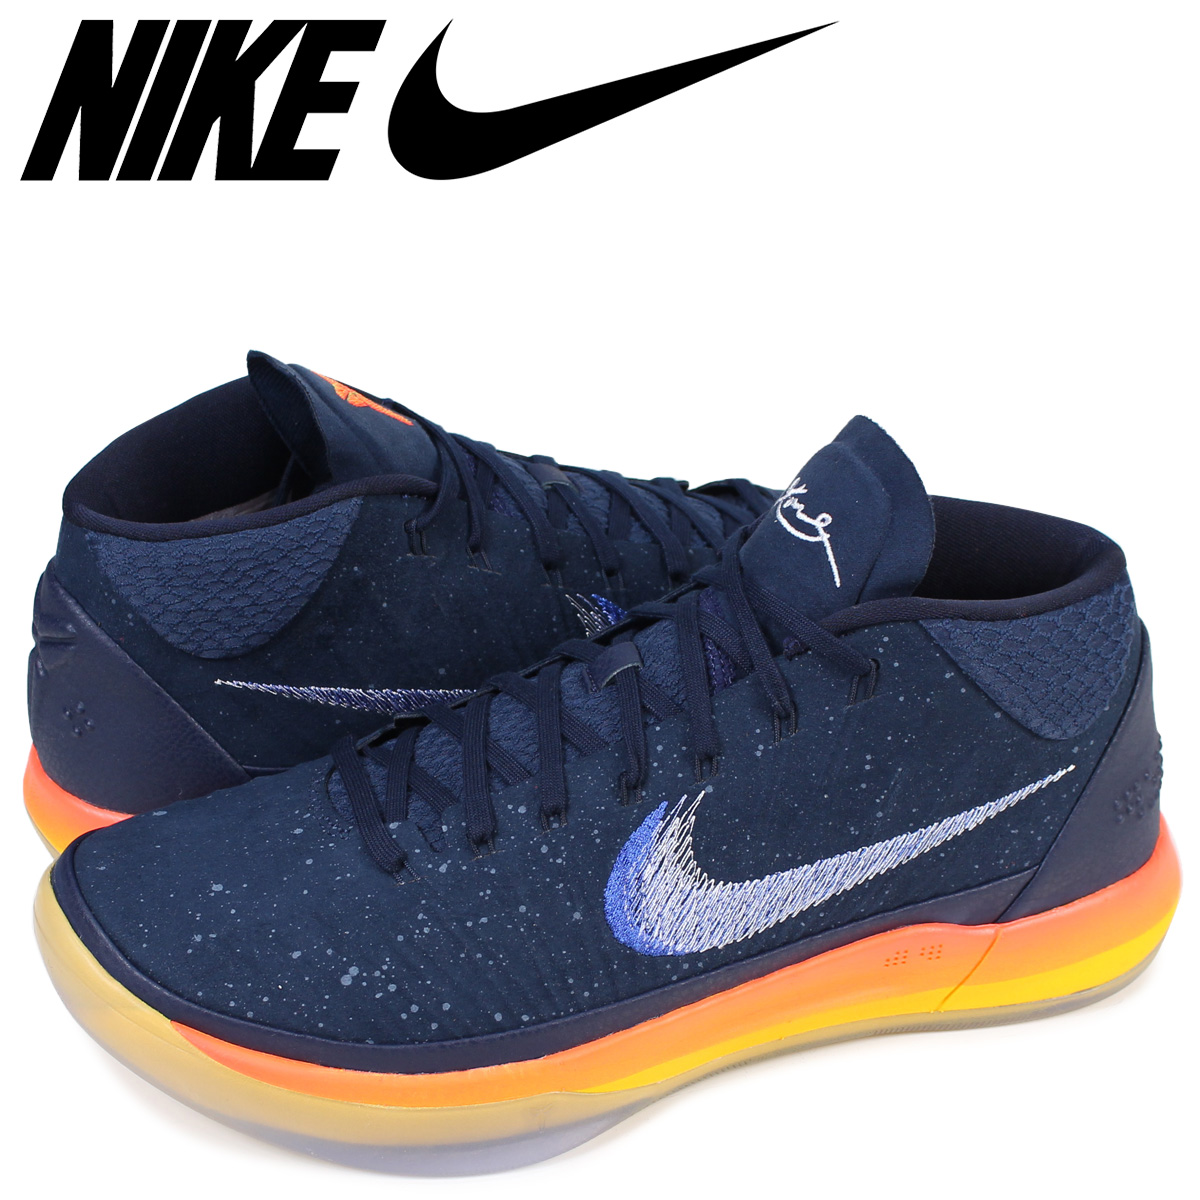 pick up 554cd 1f767 NIKE KOBE AD EP Nike Corby sneakers 922,484-401 men's shoes navy [1711]